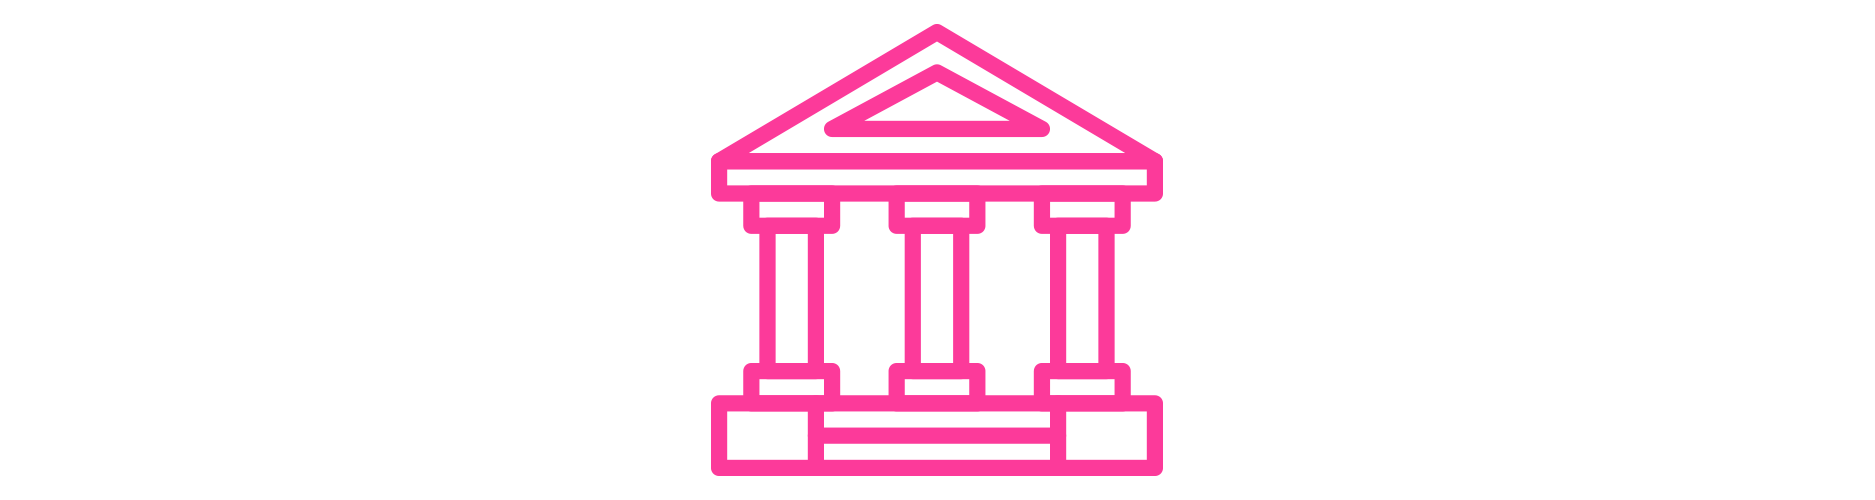 icon-school-pink.png